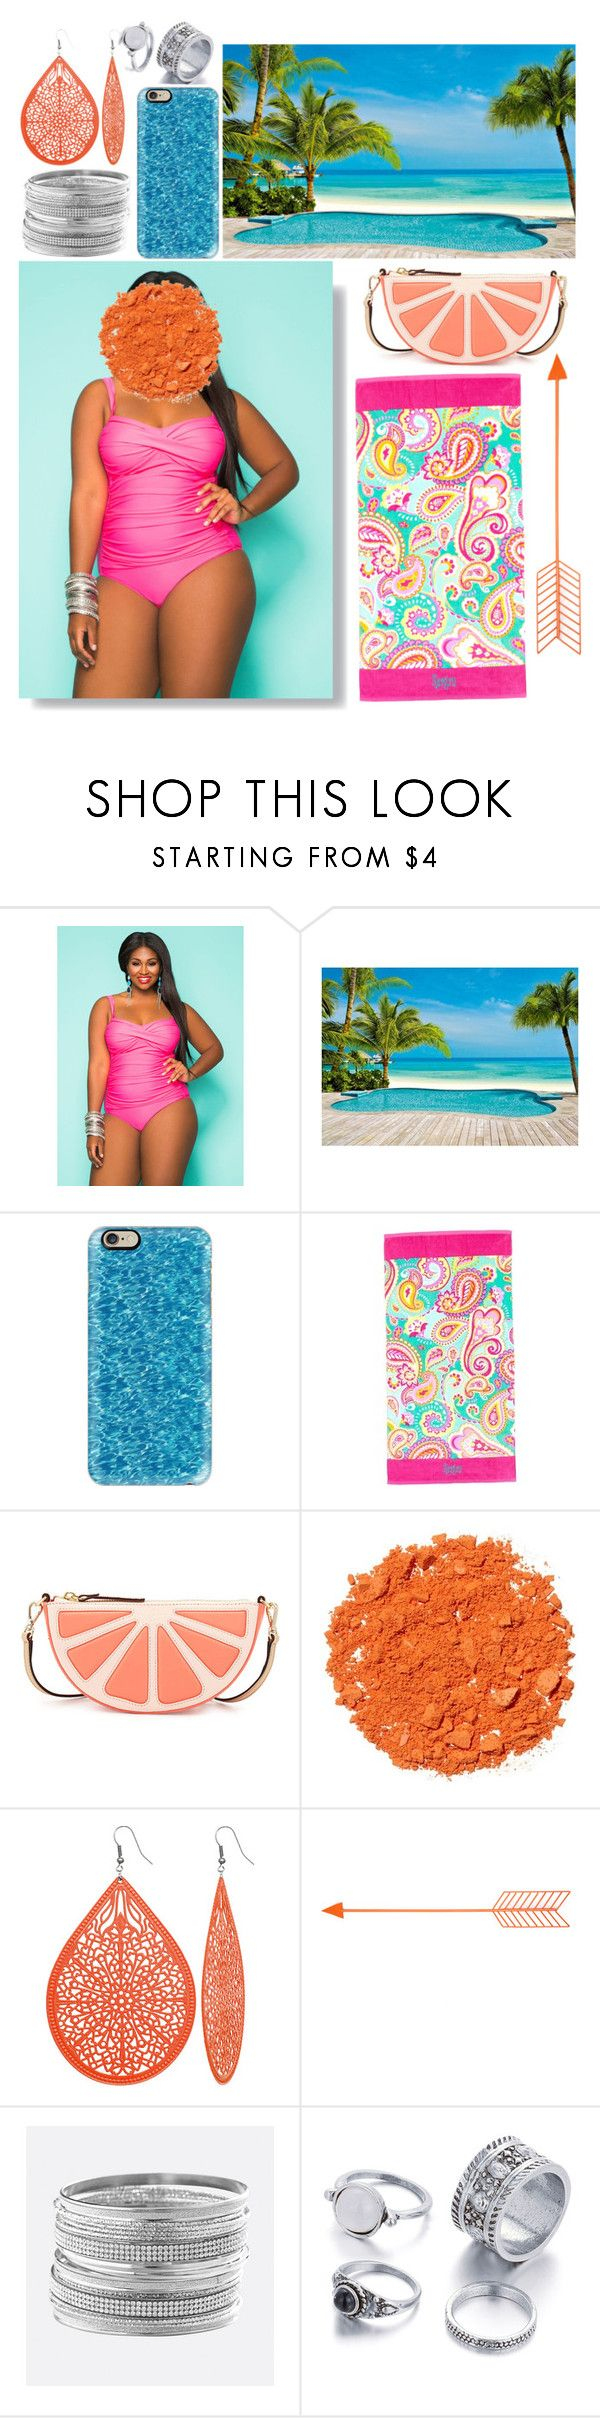 """""""Color Pool Outfit"""" by mersunflower ❤ liked on Polyvore featuring Ashley Stewart, Casetify, Kate Spade, Illamasqua, Avenue, beach, pool, colorful and bathingsuit"""